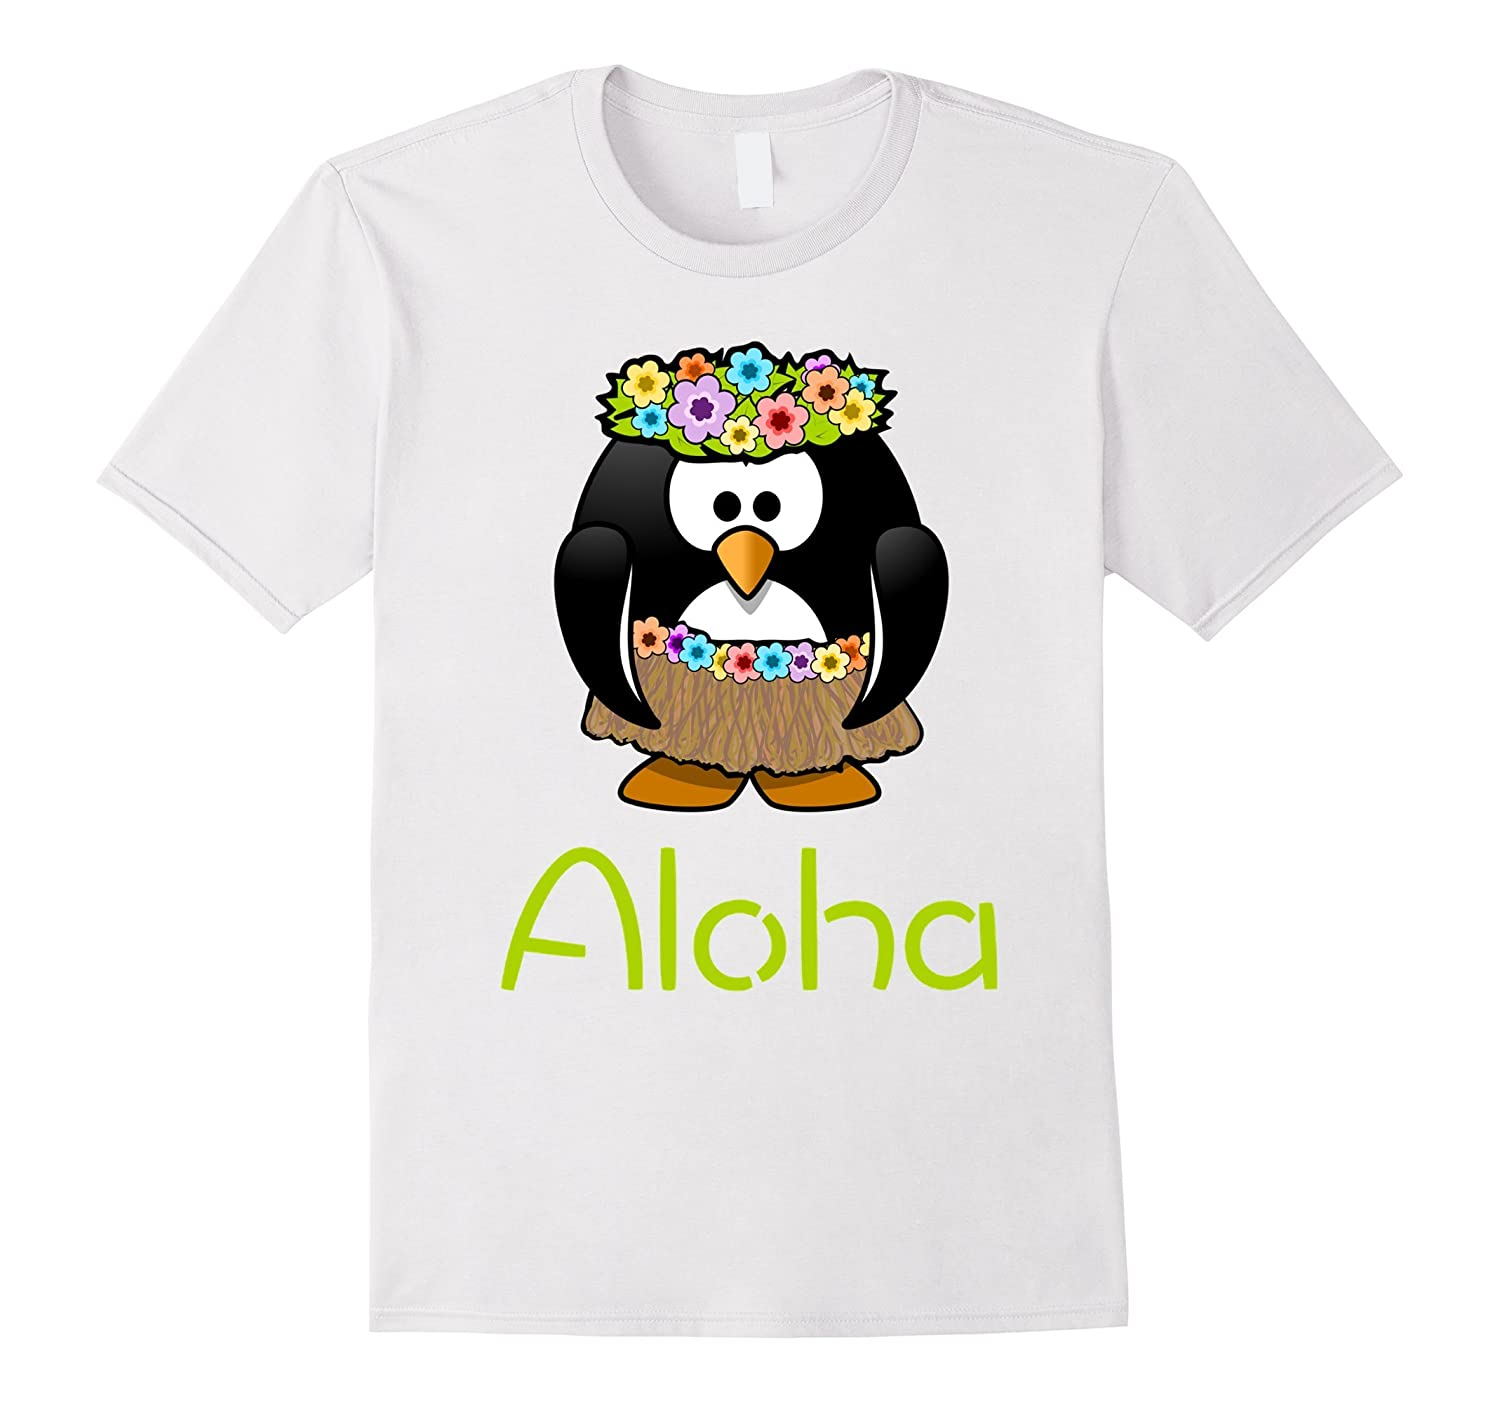 00c15acb Kids Hawaiian shirts: Aloha aloha animals t shirts-CL – Colamaga